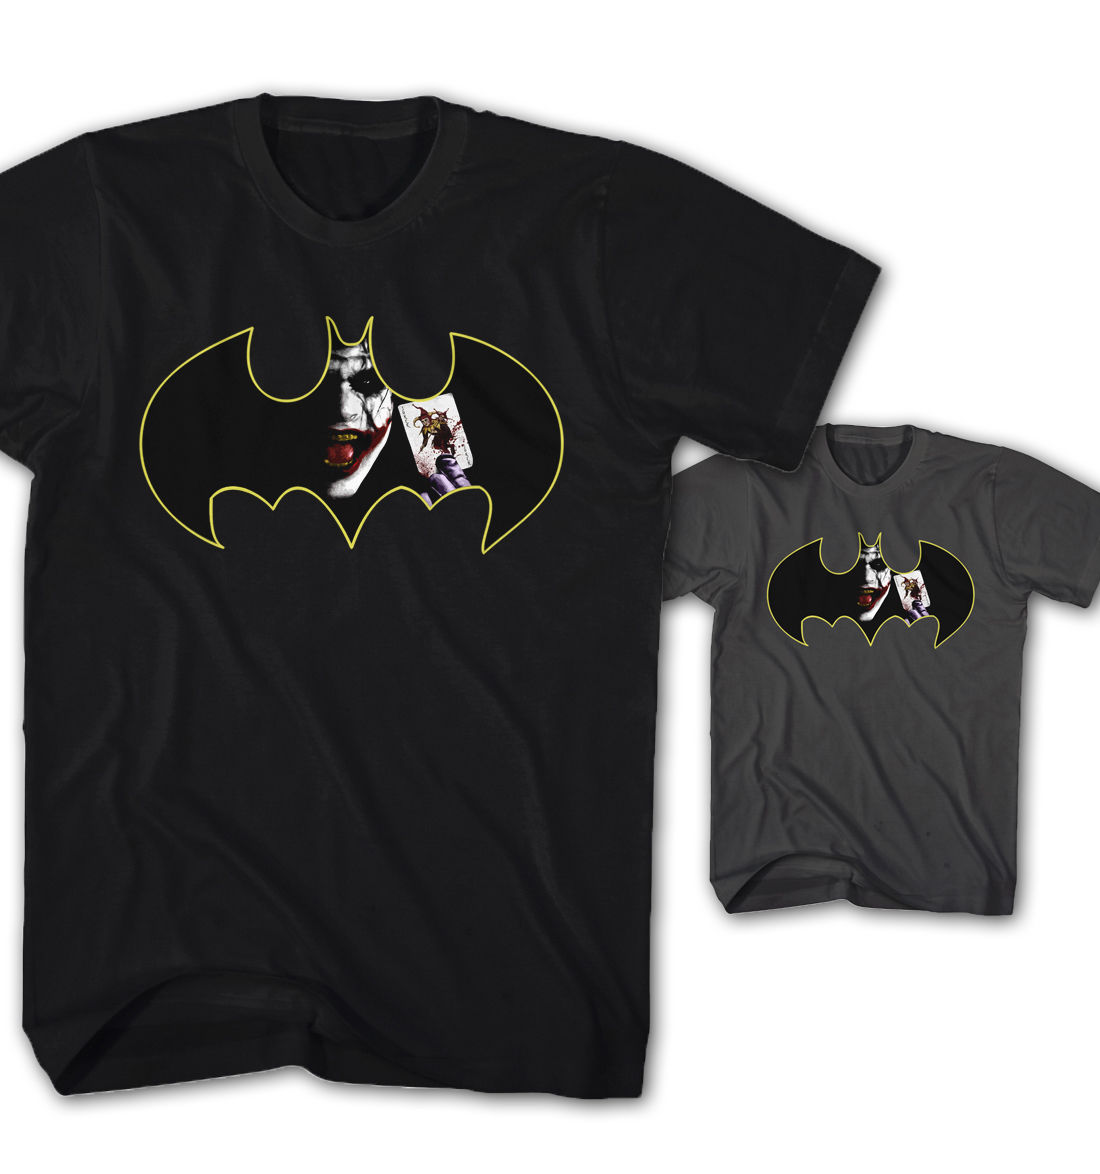 BATMAN INSPIRED DARK KNIGHT JOKER FILM MOVIE TAXI SERVICE BATMOBILE 2 T SHIRT